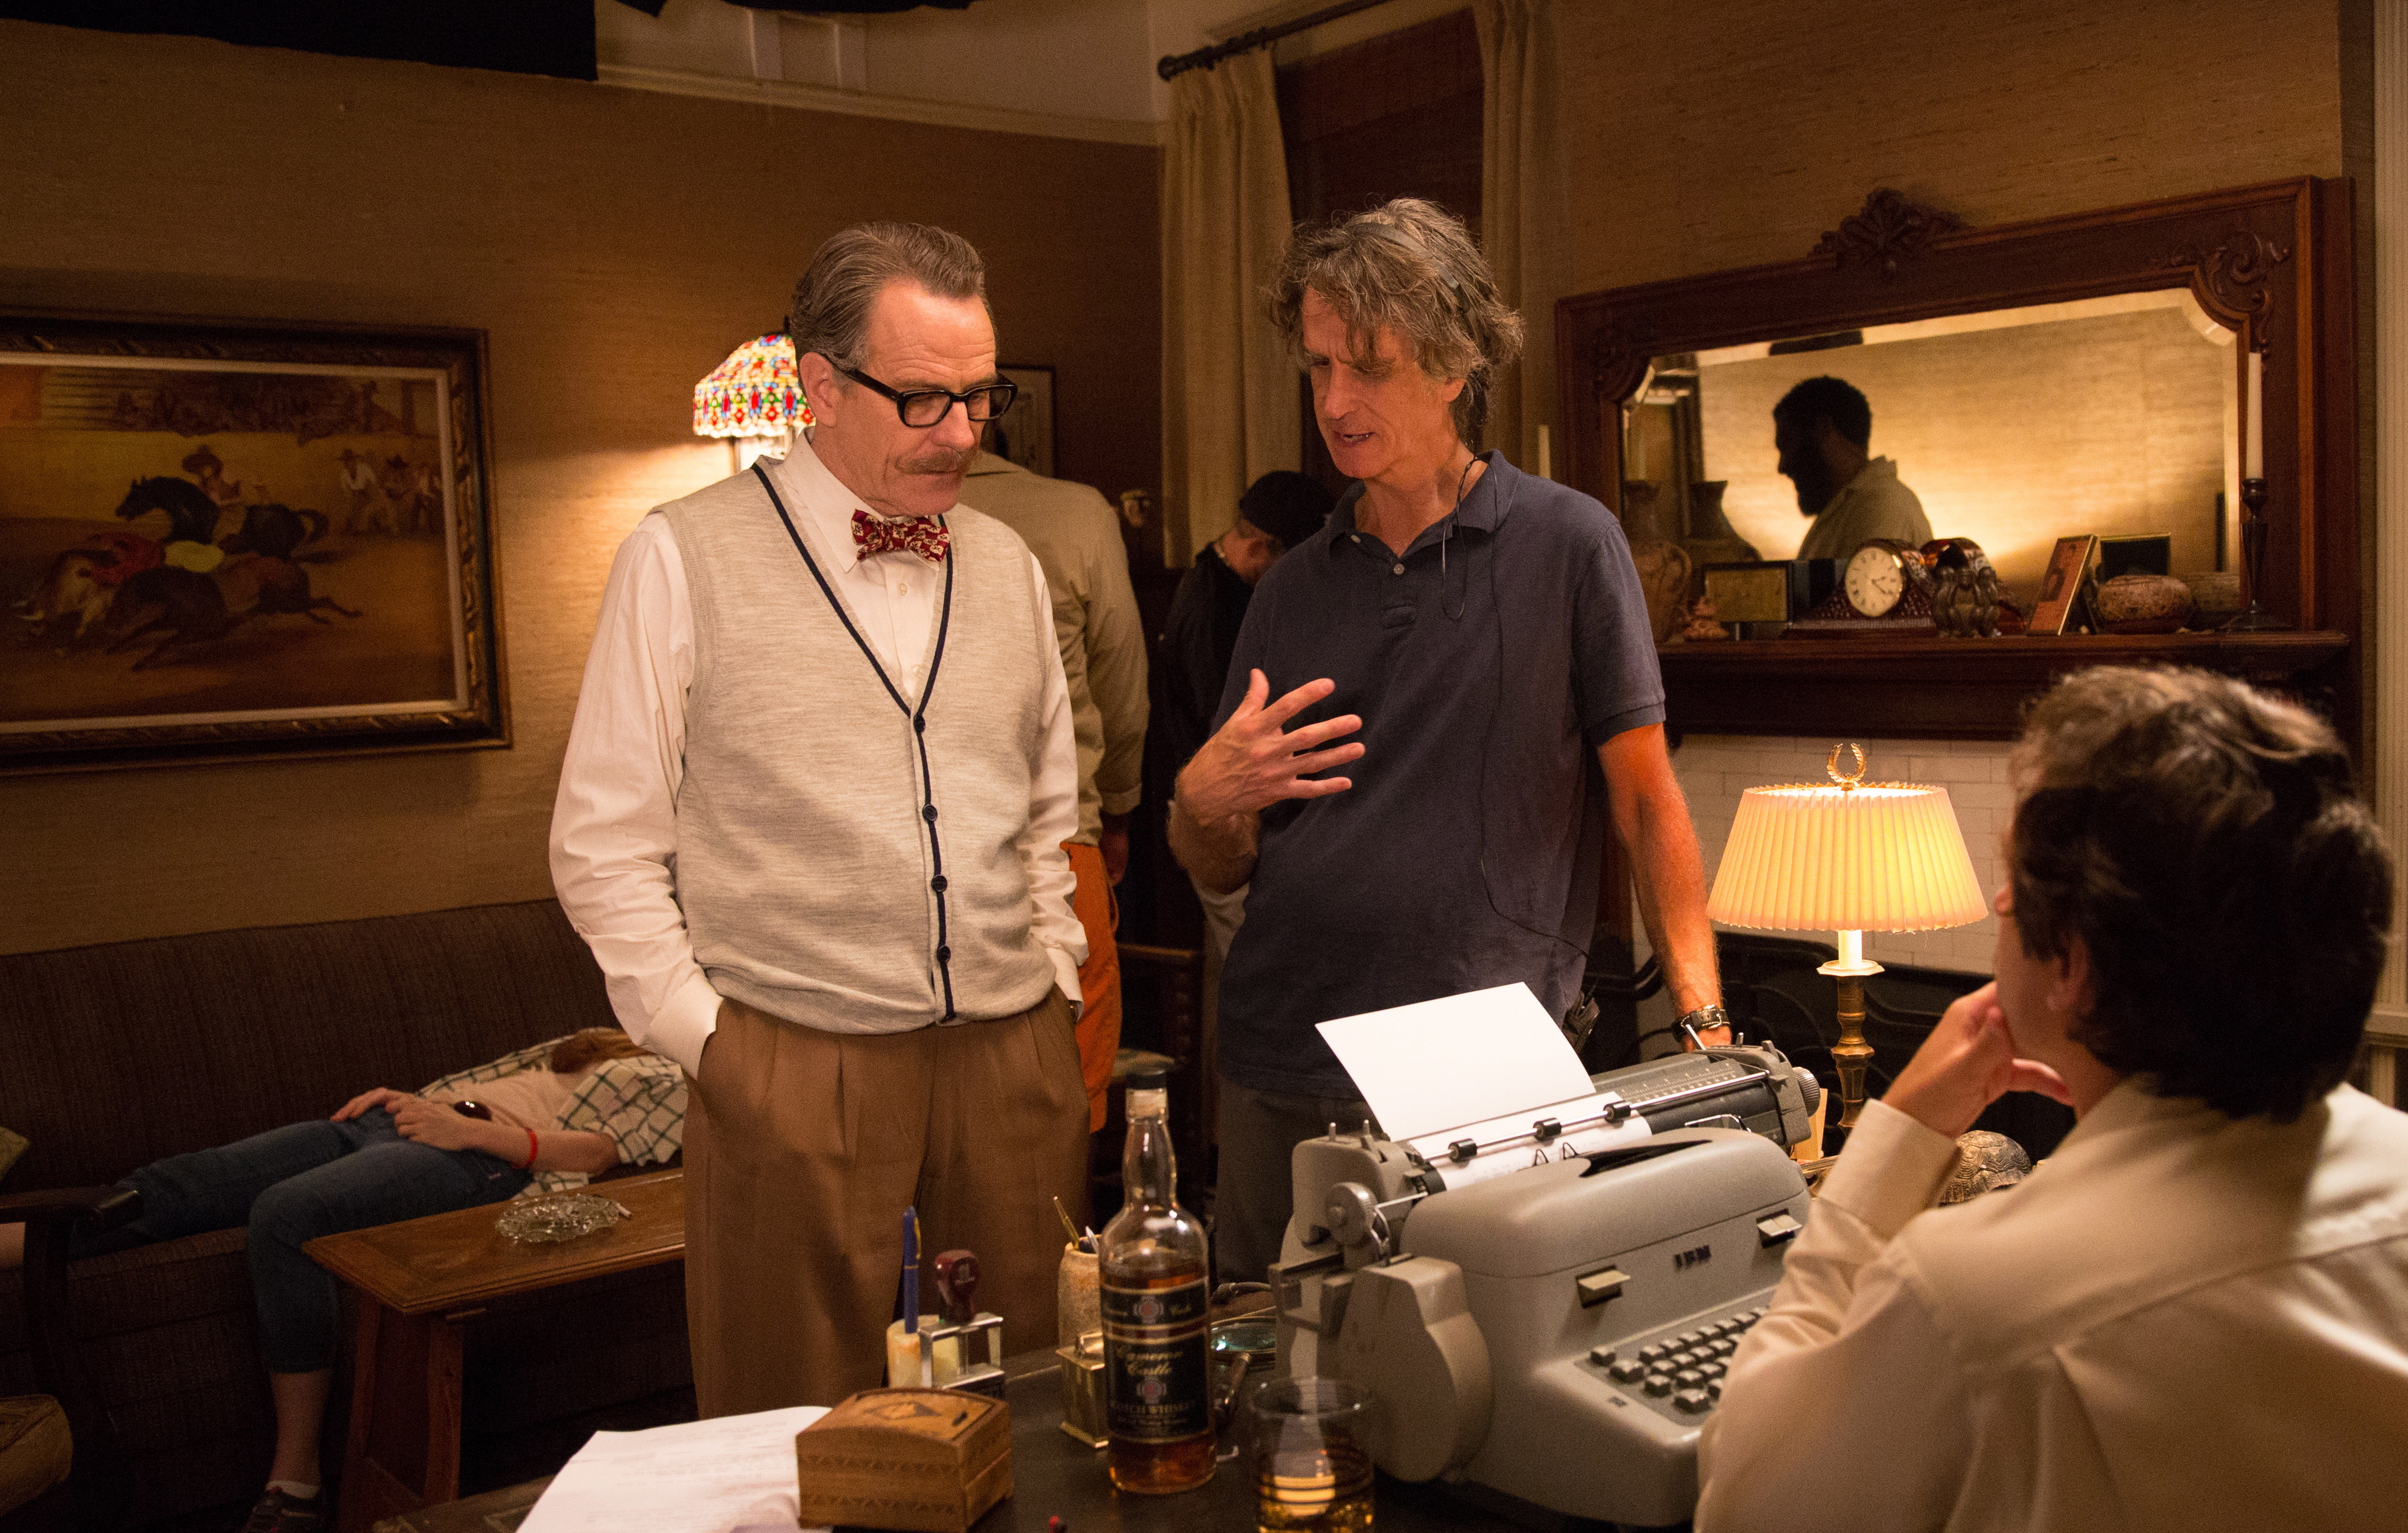 Jay Roach and Bryan Cranston in Trumbo (2015)